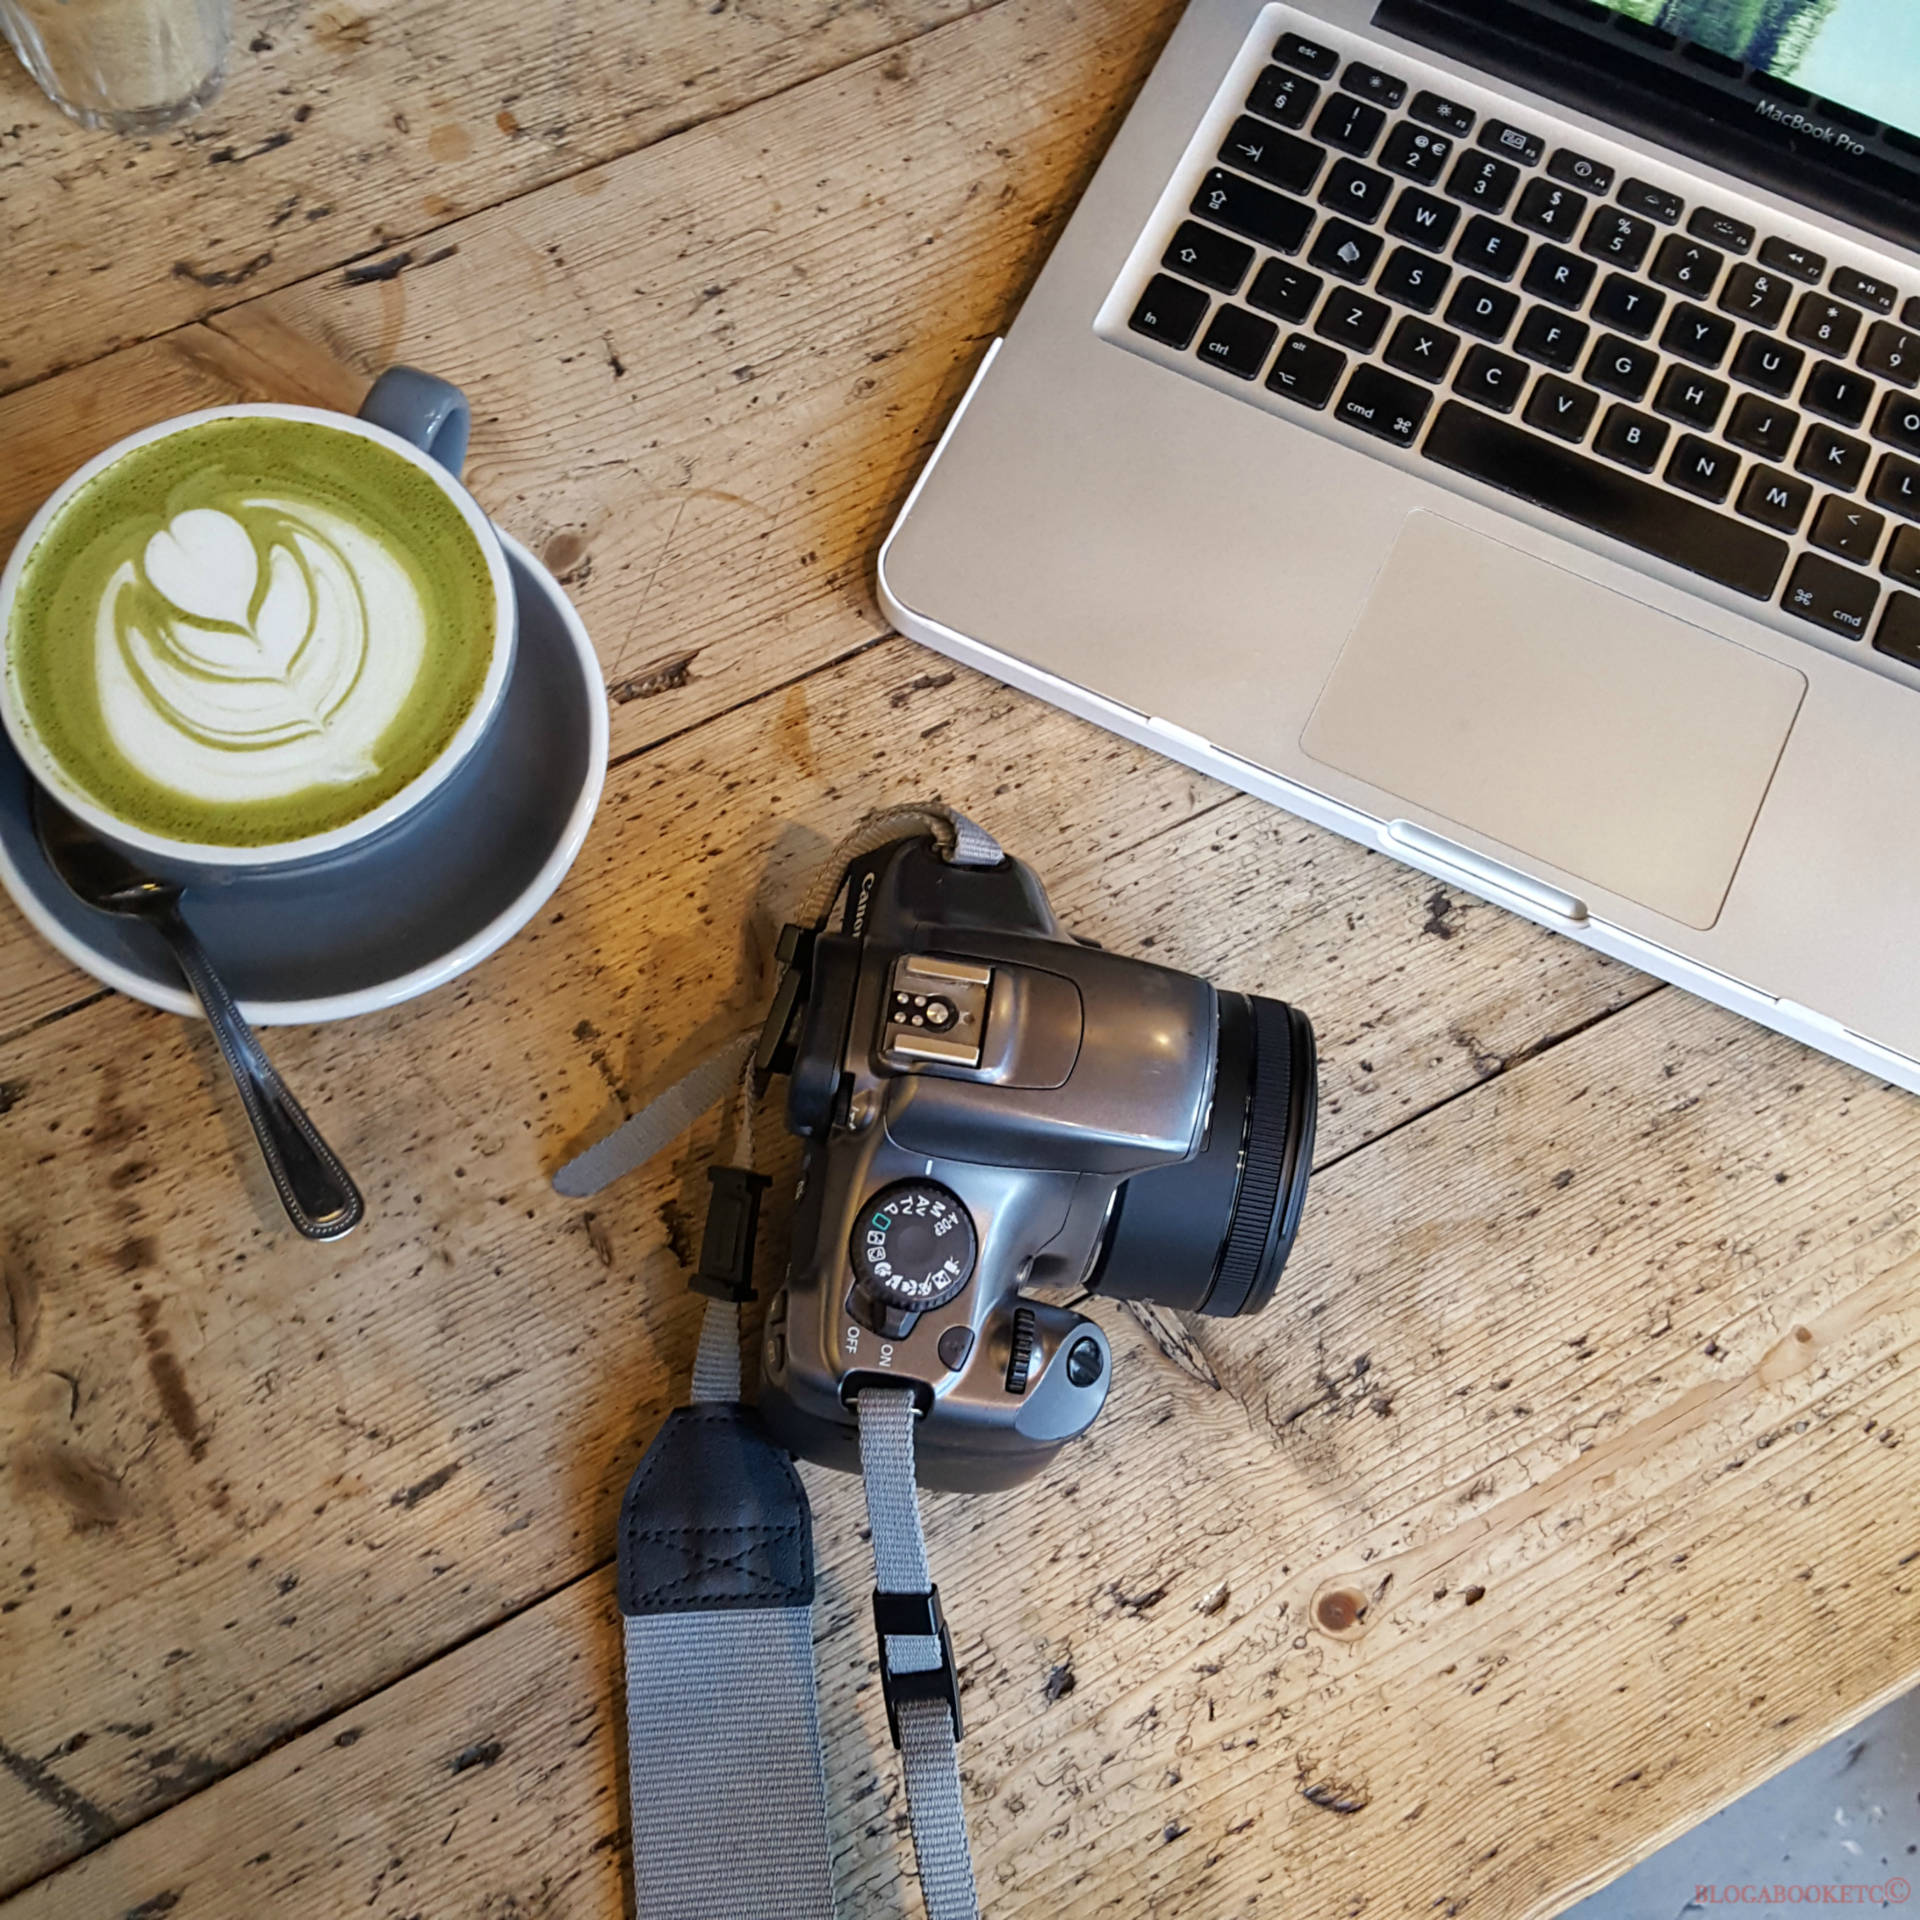 I'll Tell You What I Want, Organisation, Organization, Life, Lists, To Do Lists, To Do, List, 2017, Matcha Latte, Latte Art, Latte, AIDA Shoreditch, AIDA, Shoreditch, London, East London, Blog A Book Etc, Fay